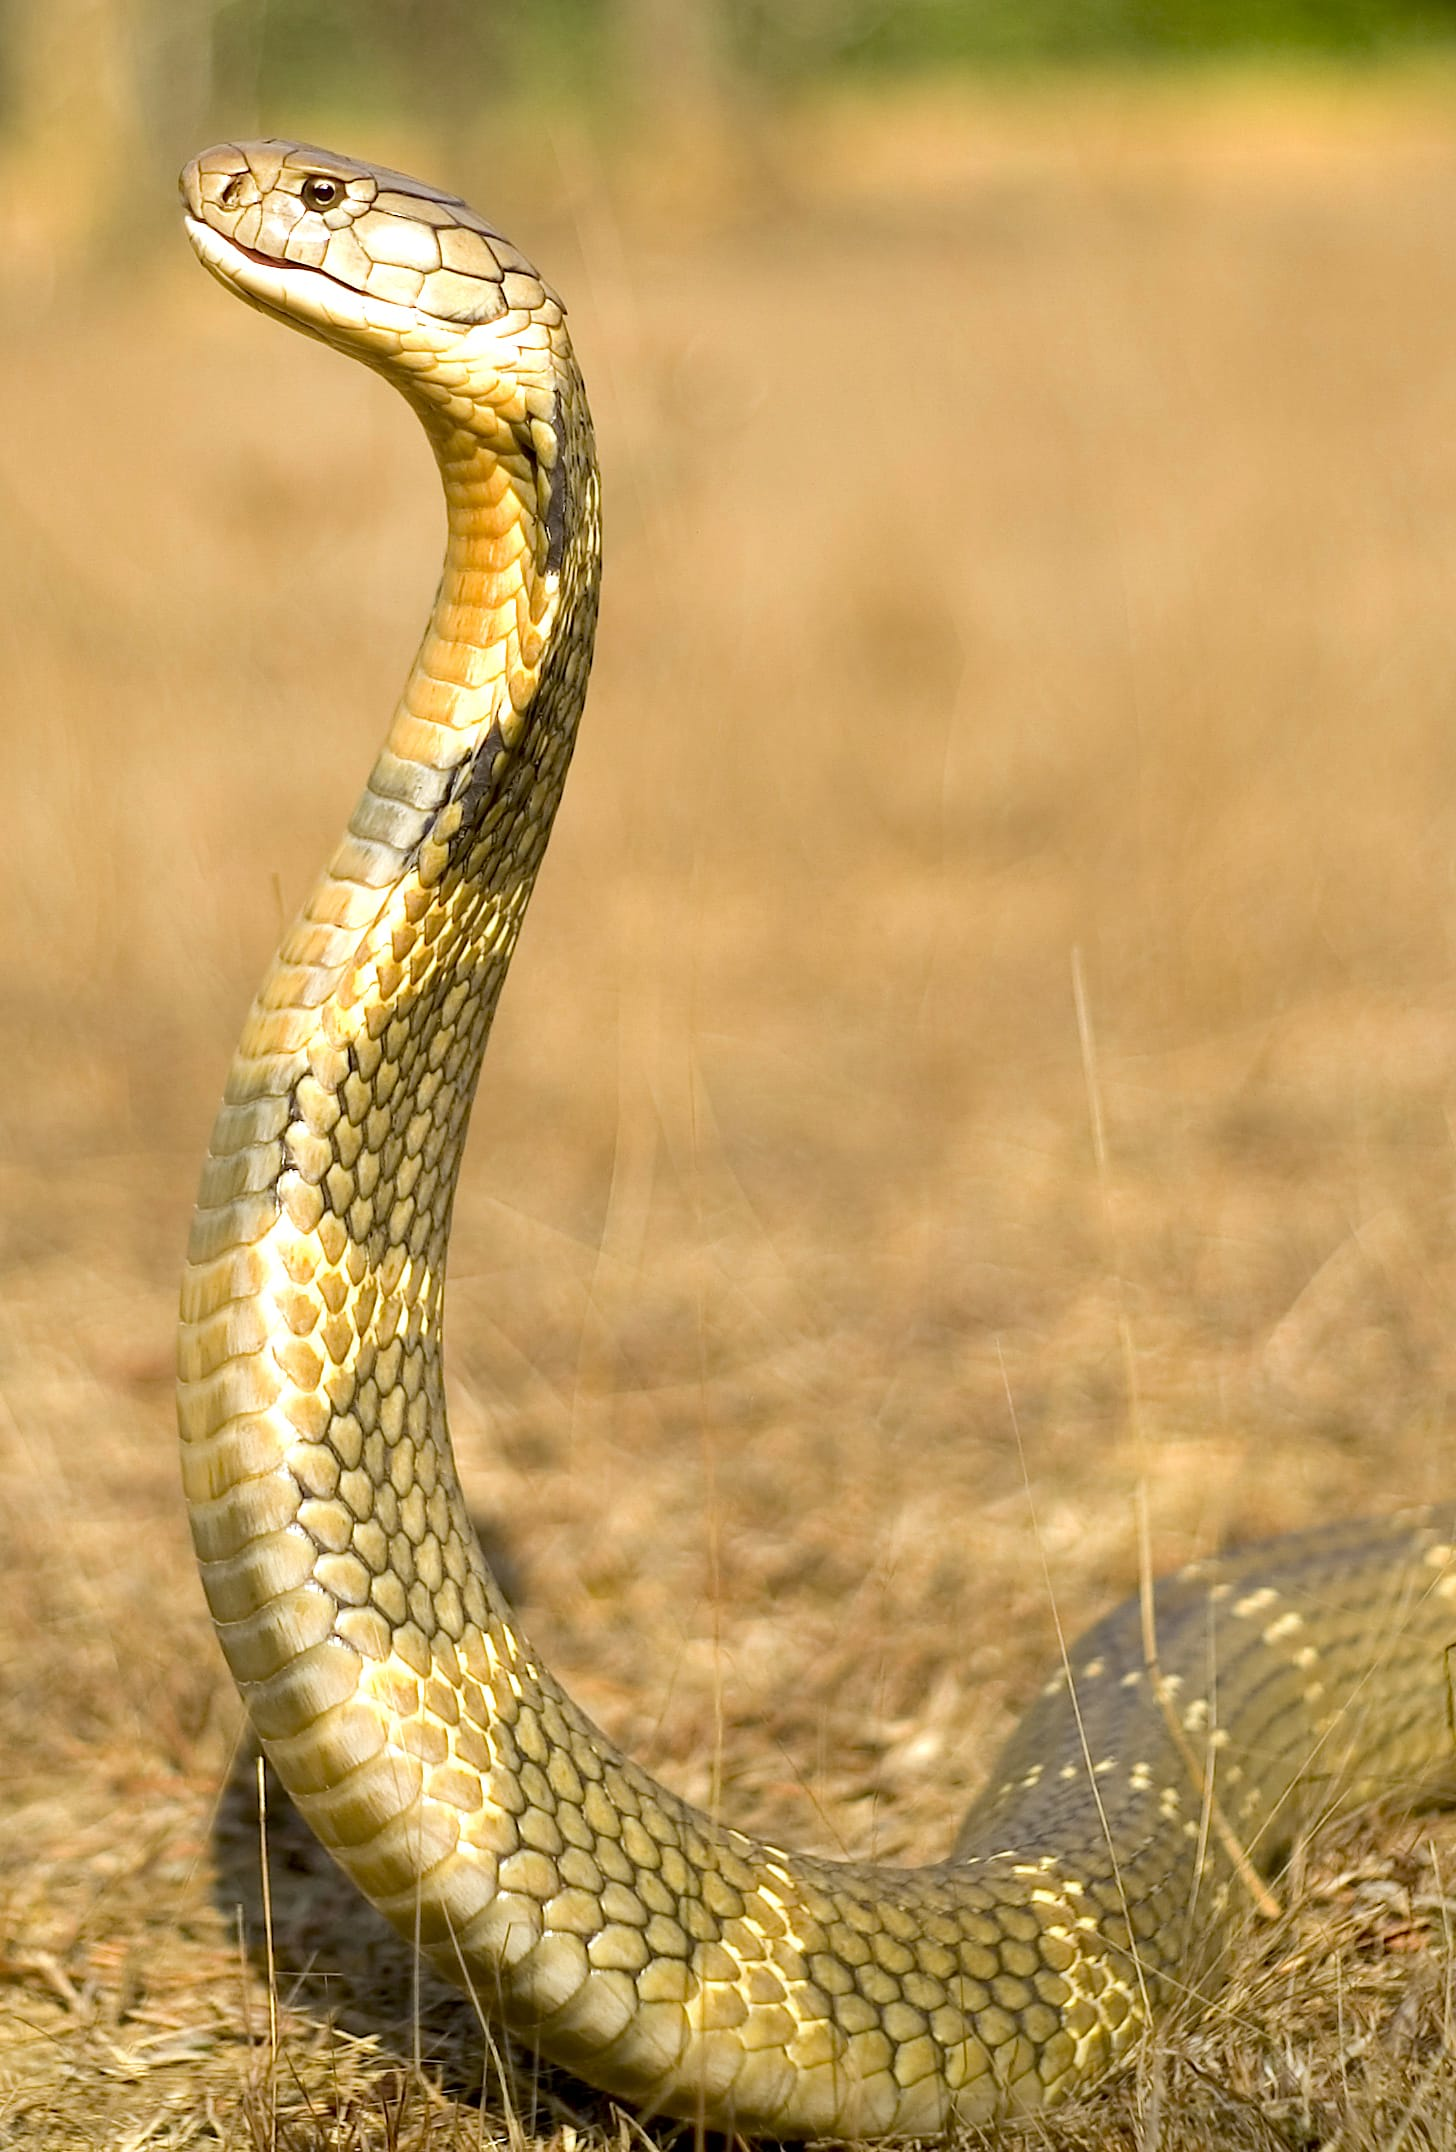 During the breeding season, higher levels of testosterone drive male king cobras to forgo eating altogether to focus their energies on sex. Photo courtesy: Agumbe Rainforest Research Station